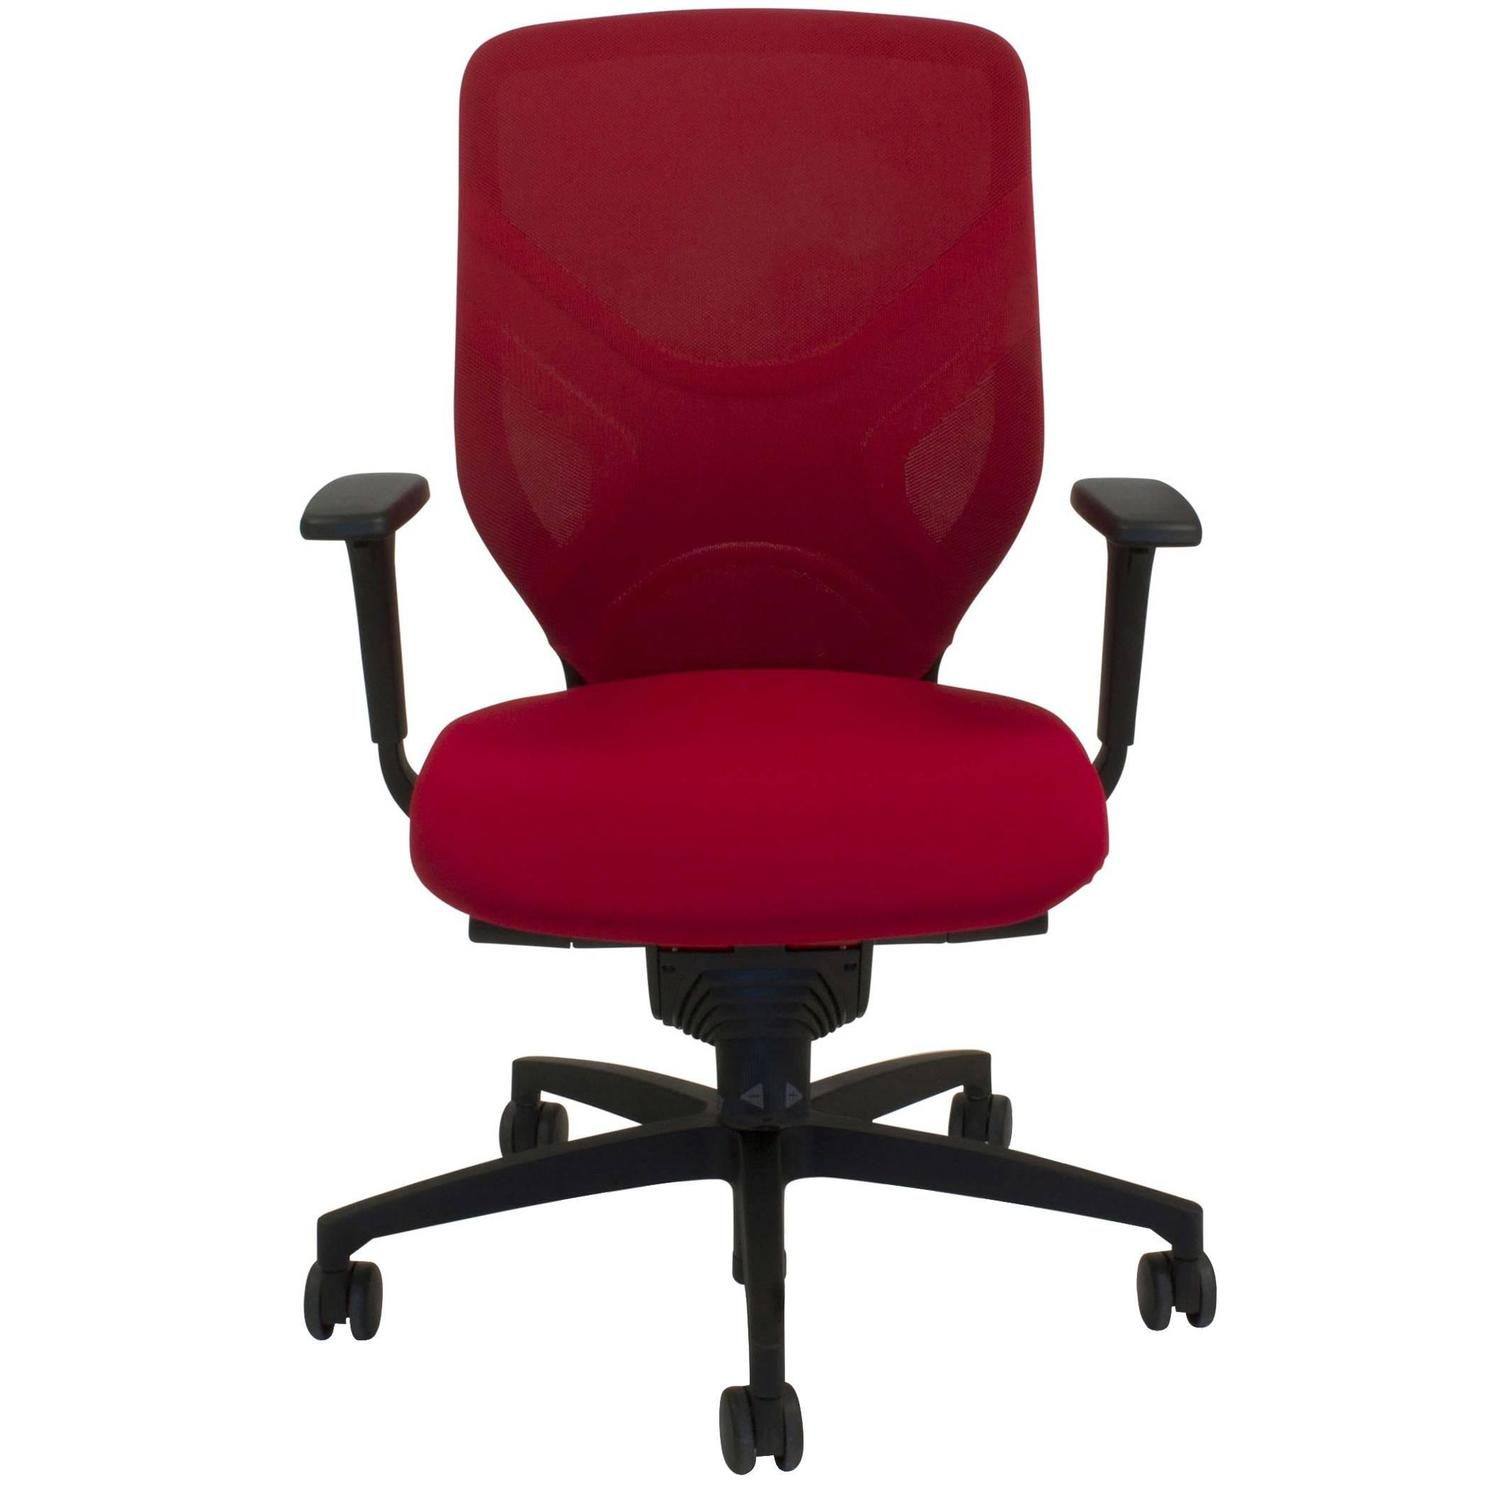 Red Fabric in 184 7 Swivel fice Task Chair by Wiege for Wilkhahn